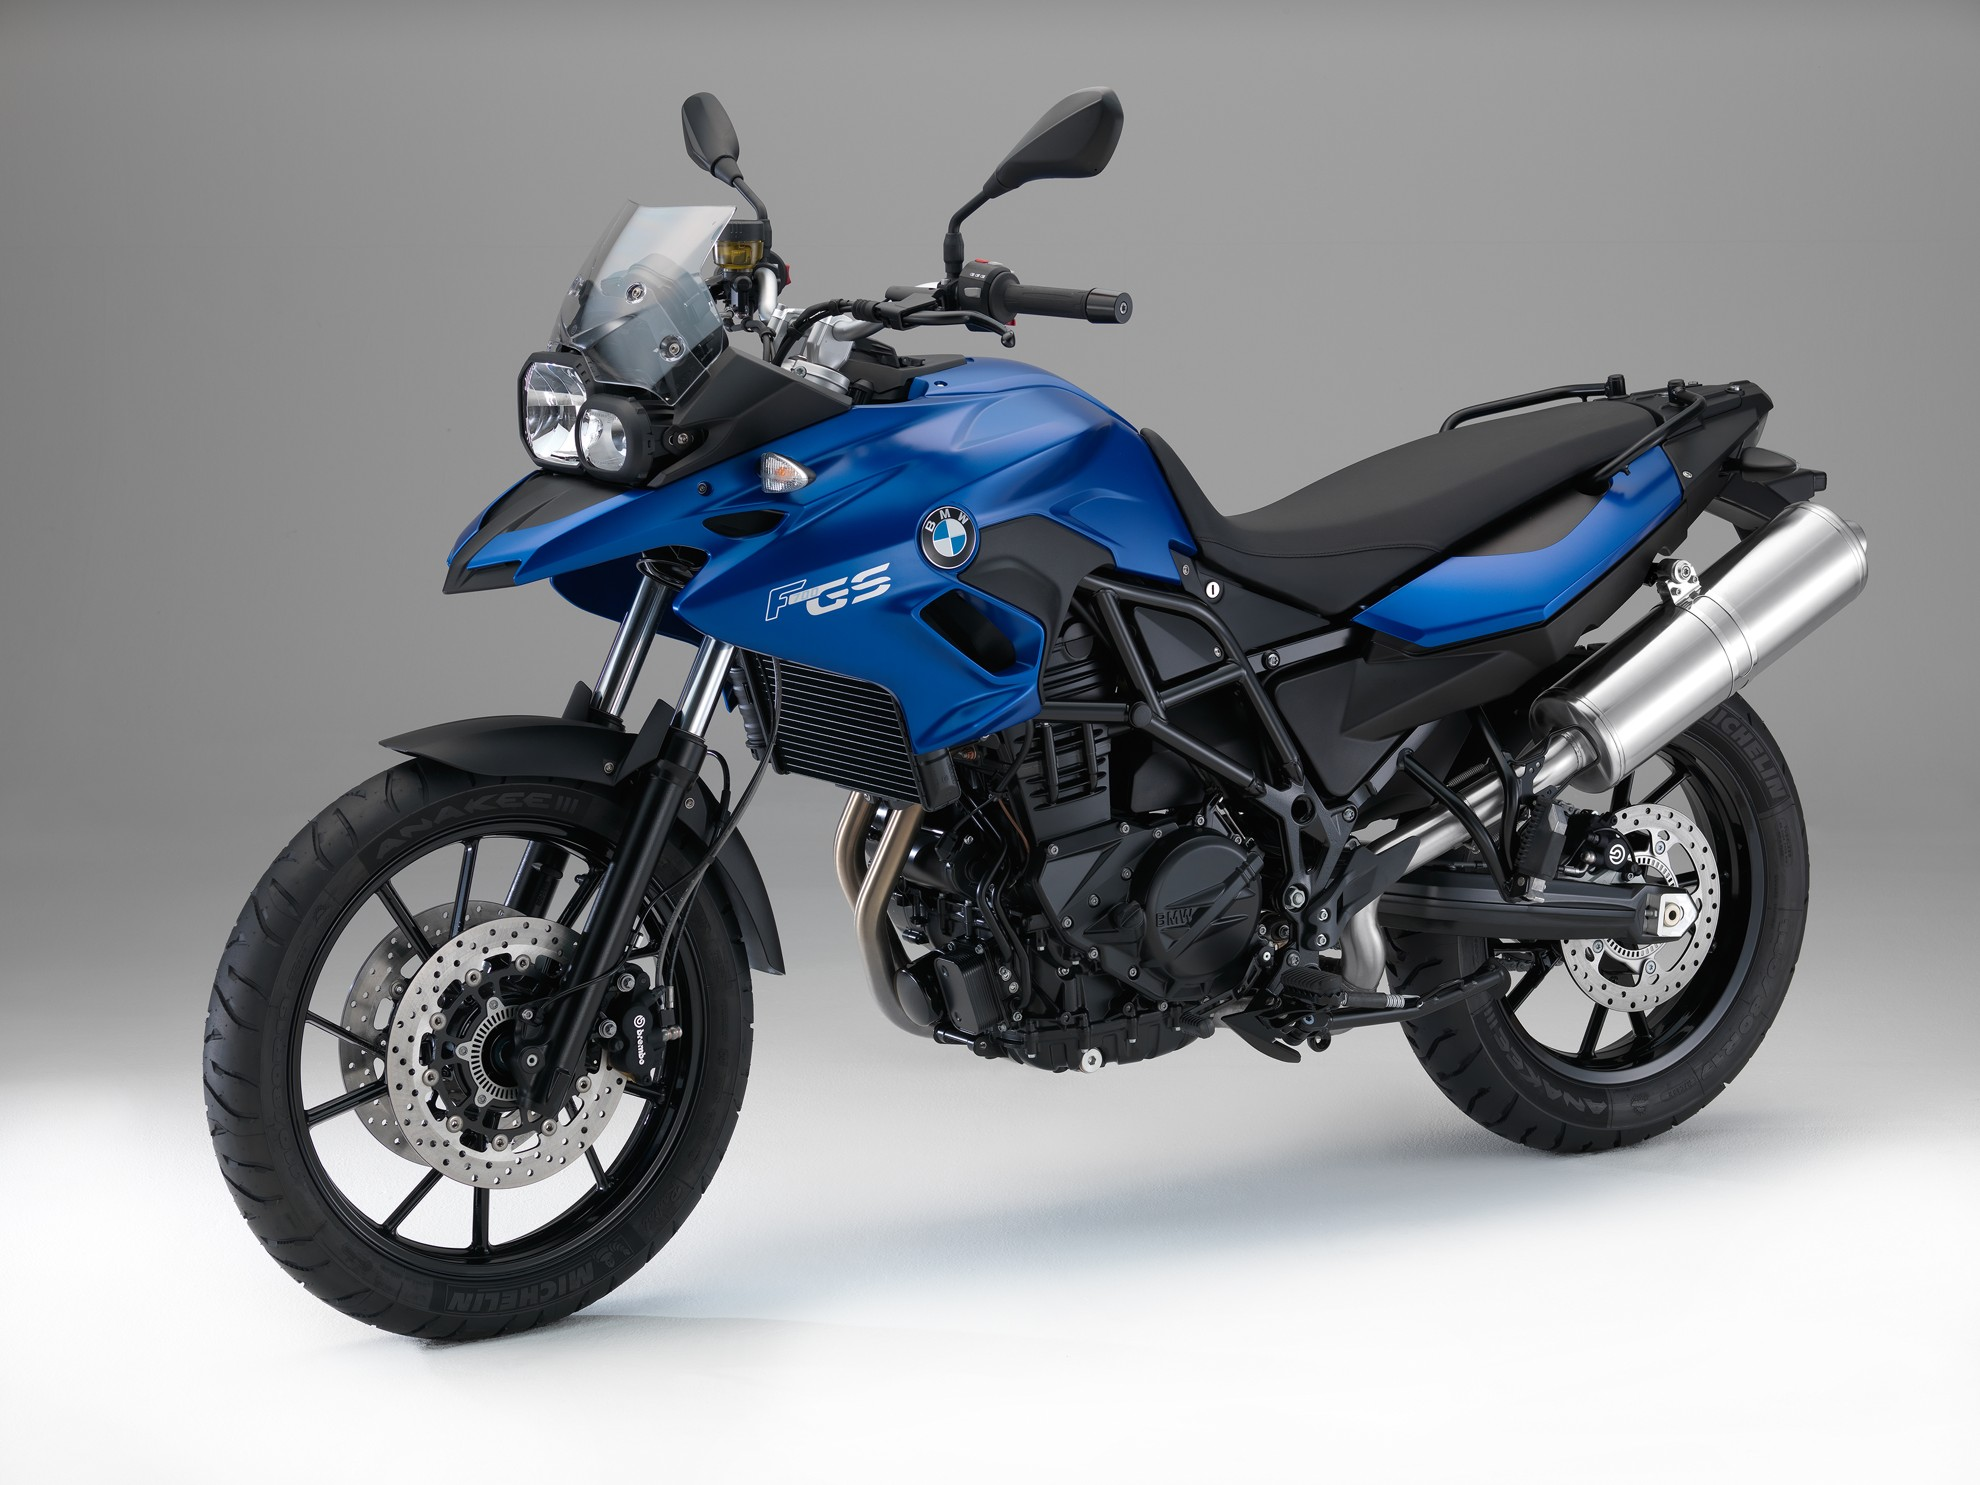 As Of Model Year 2015, The BMW F 700 GS Will Also Be Available In The  Following New Paint Finishes Or Paint Finish Combinations: